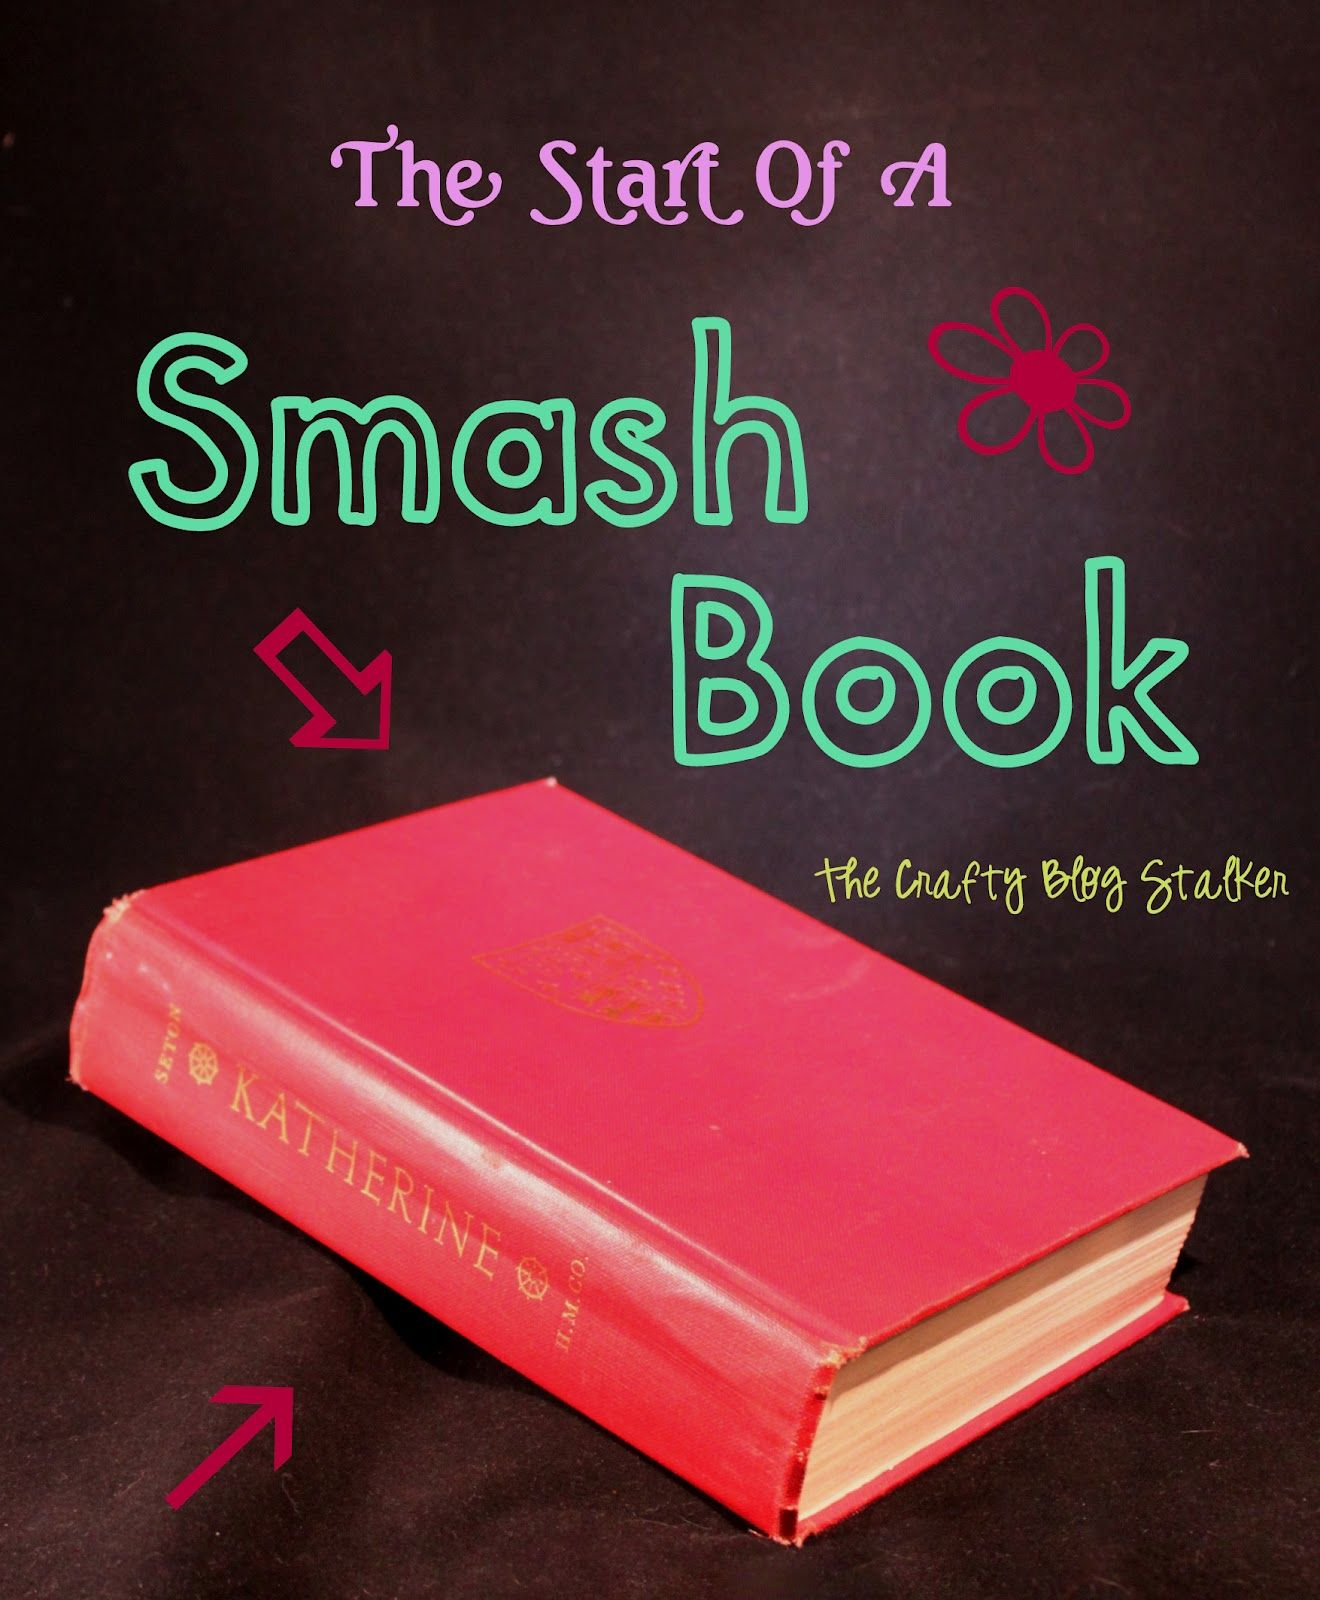 How To Start A Smash Book Upcycle Diy Smash Book Book Crafts